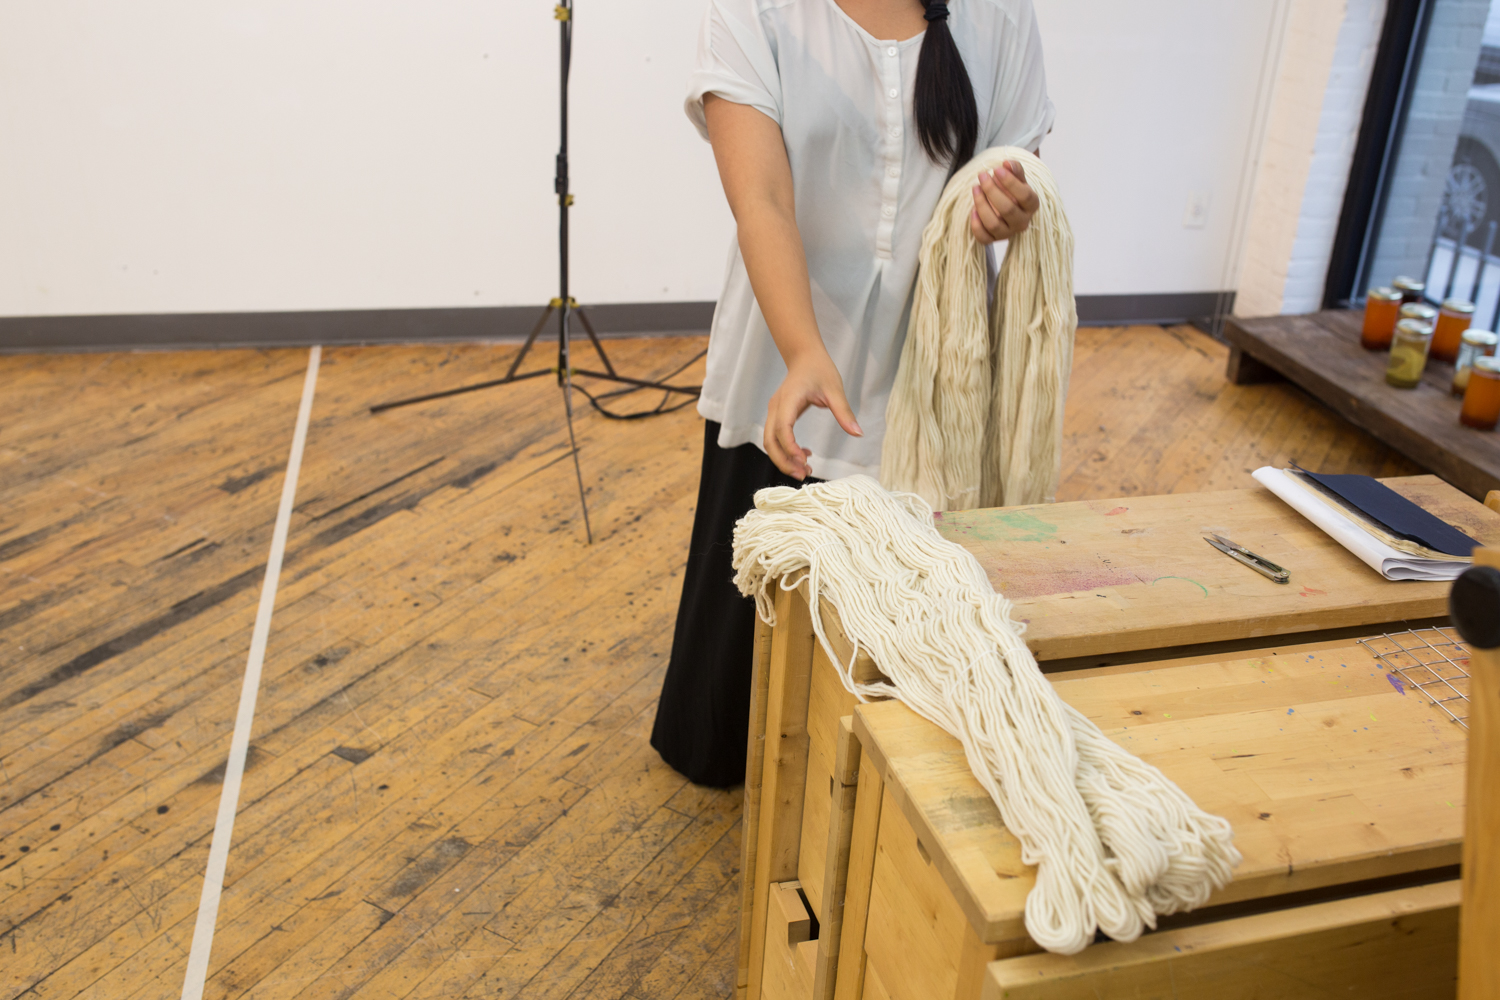 Images will go in sequence of the performance. Here is the very beginning where the artist is picking up skeins of white yarn from the table. She's wearing a white top and black full-length skirt. Her hair is in braids.